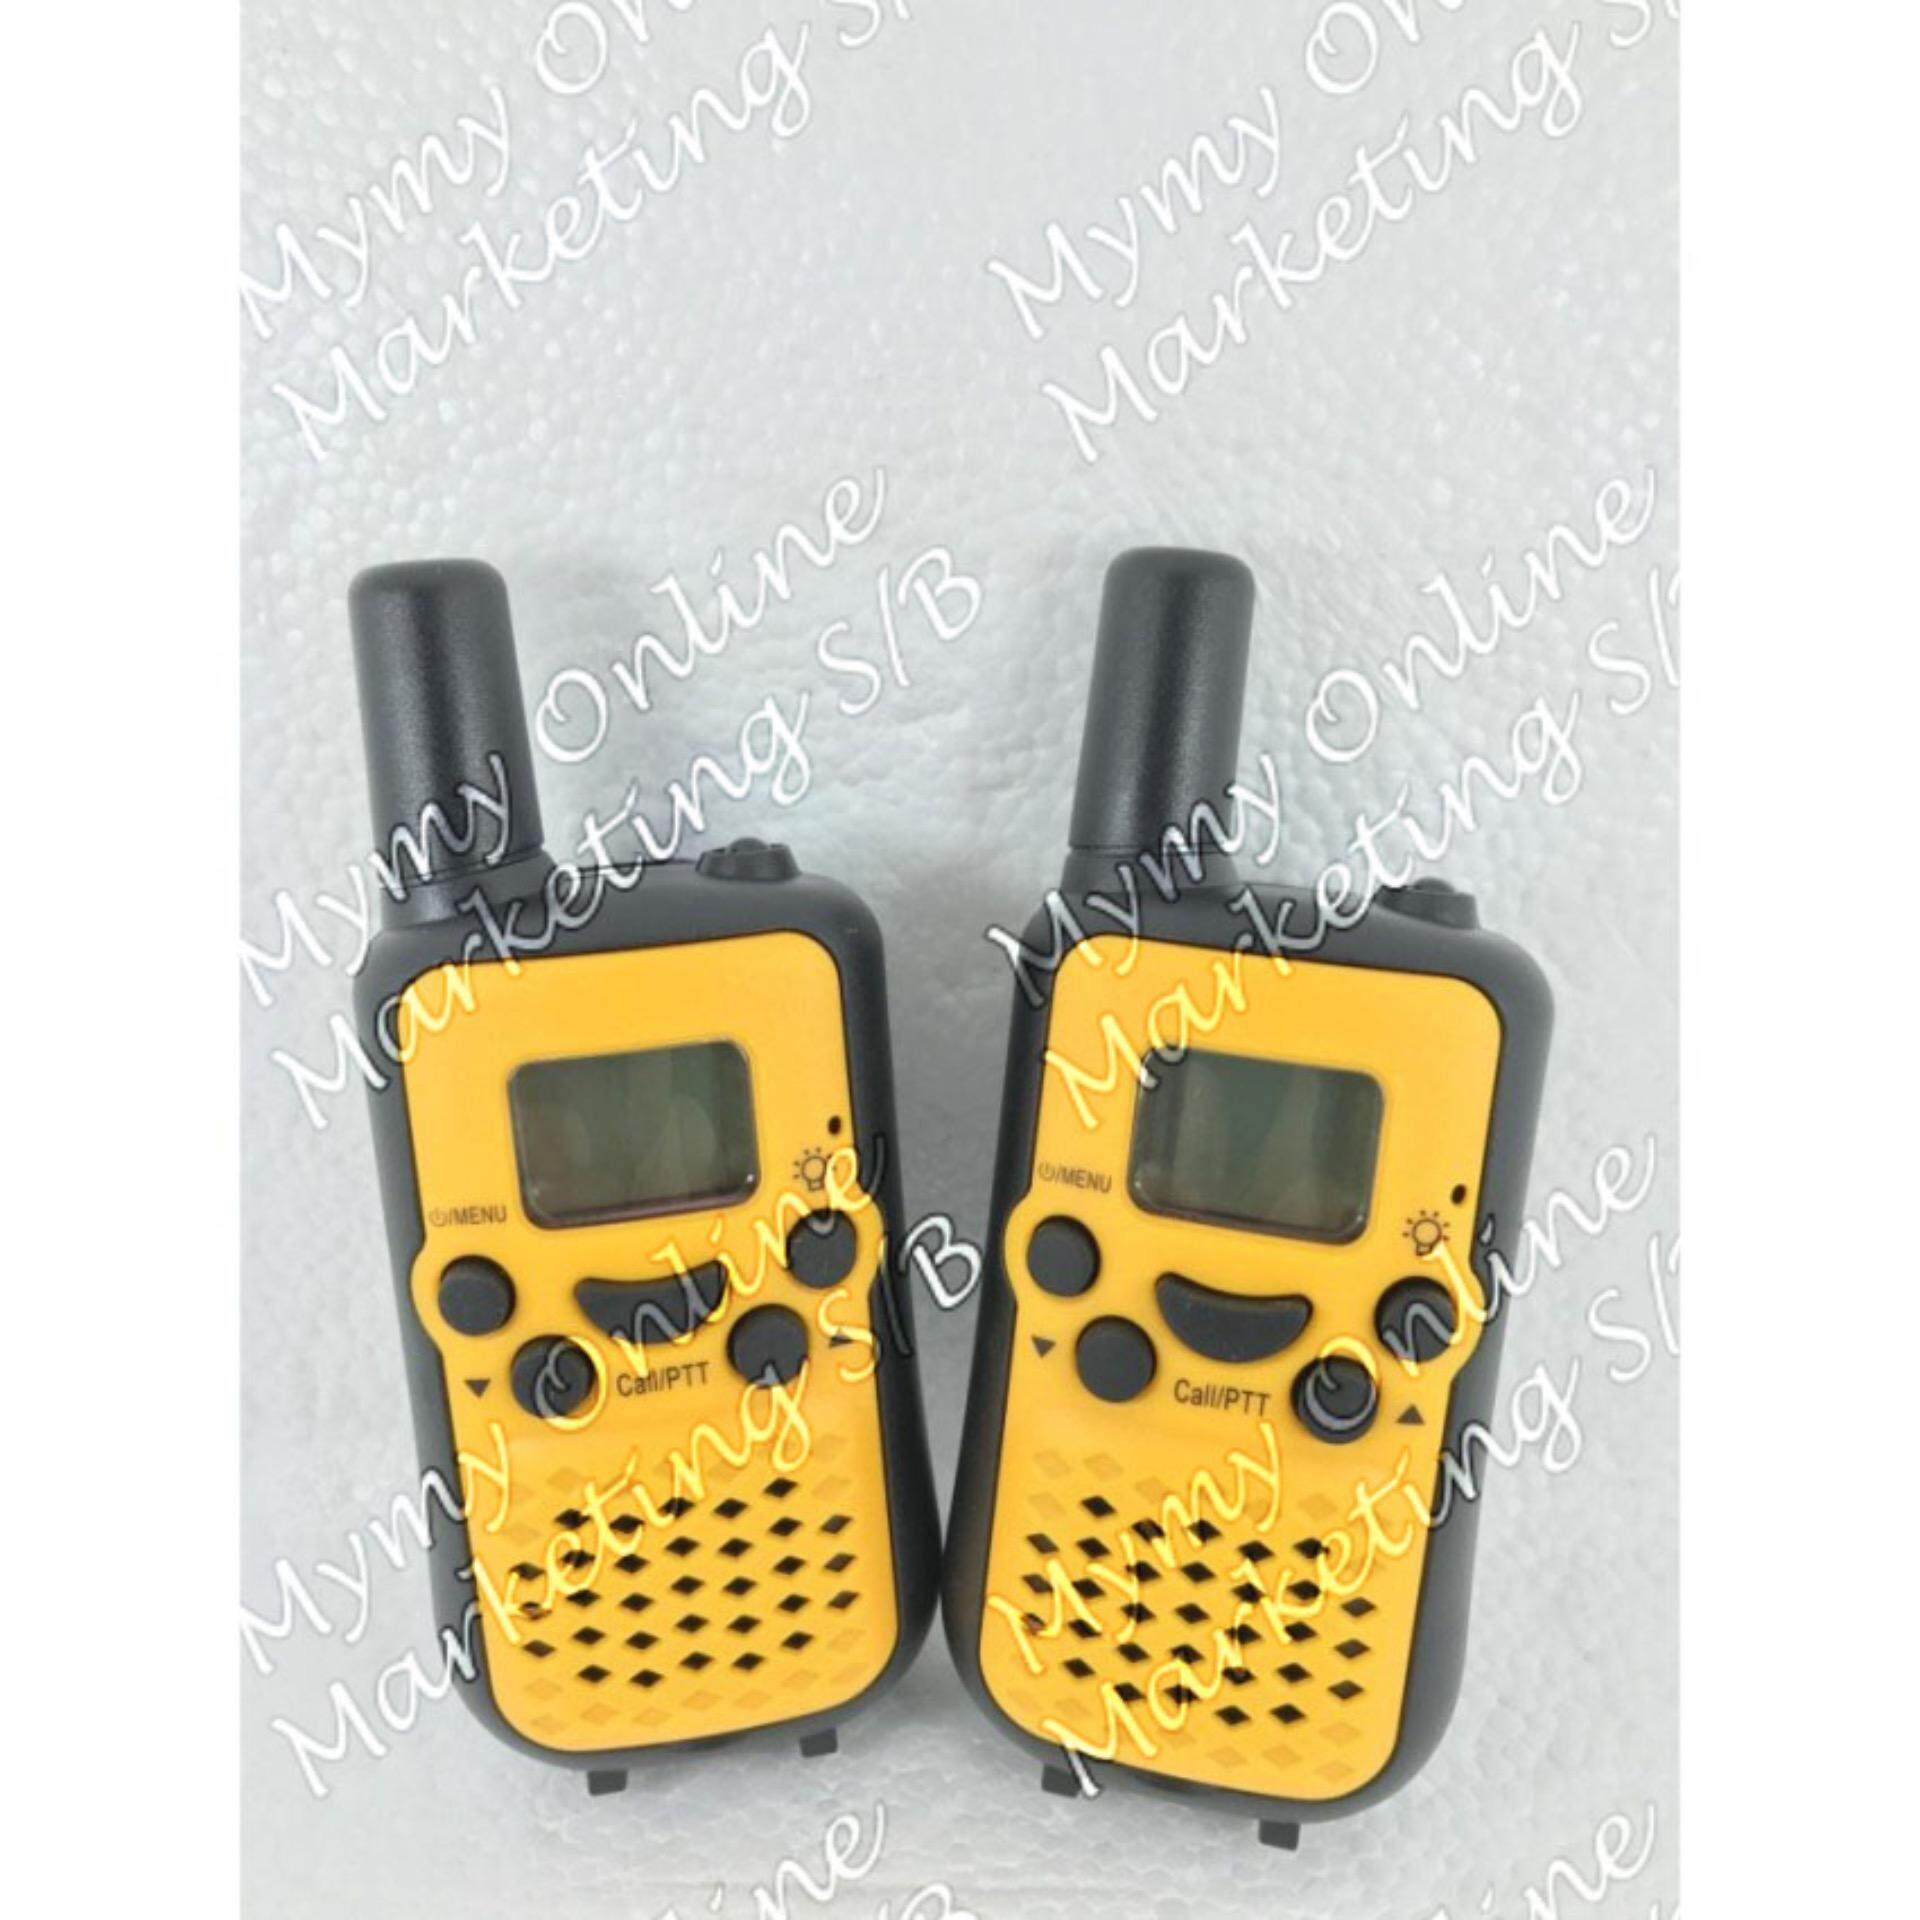 T-788 Walkie-Talkie 1 pair (2 units)